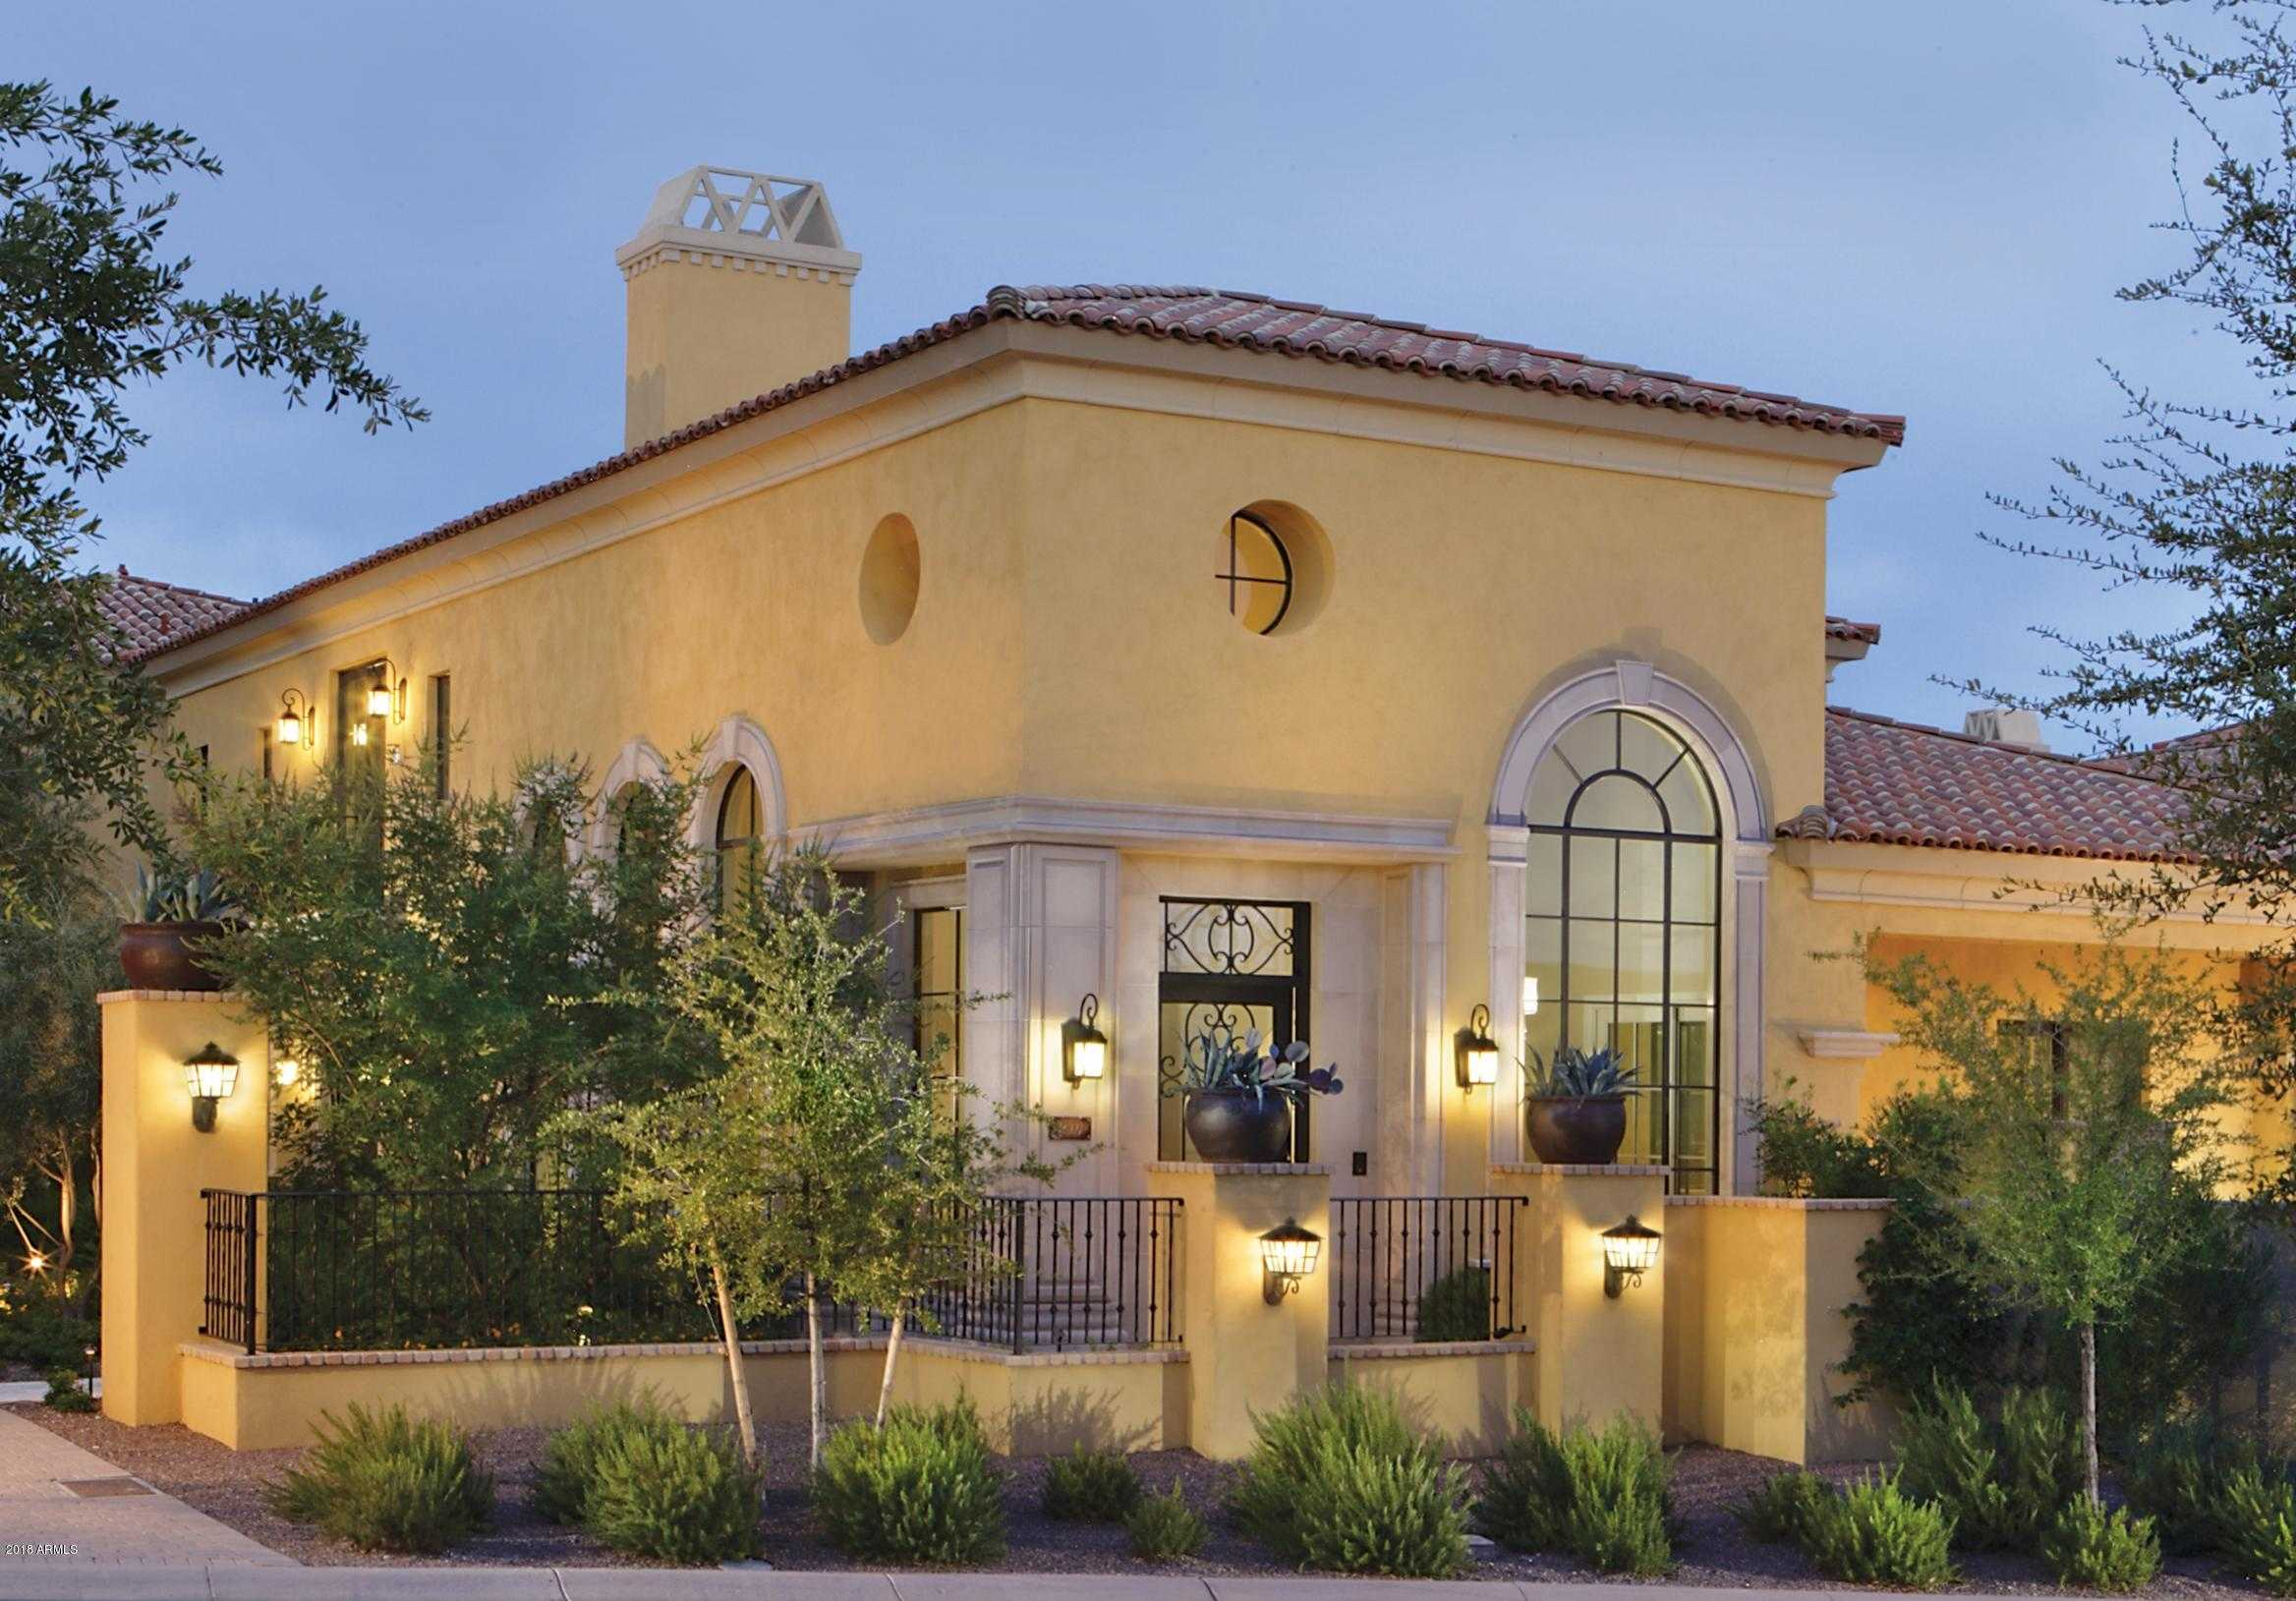 $10,000 - 4Br/5Ba - Home for Sale in Silverleaf At Dc Ranch, Scottsdale